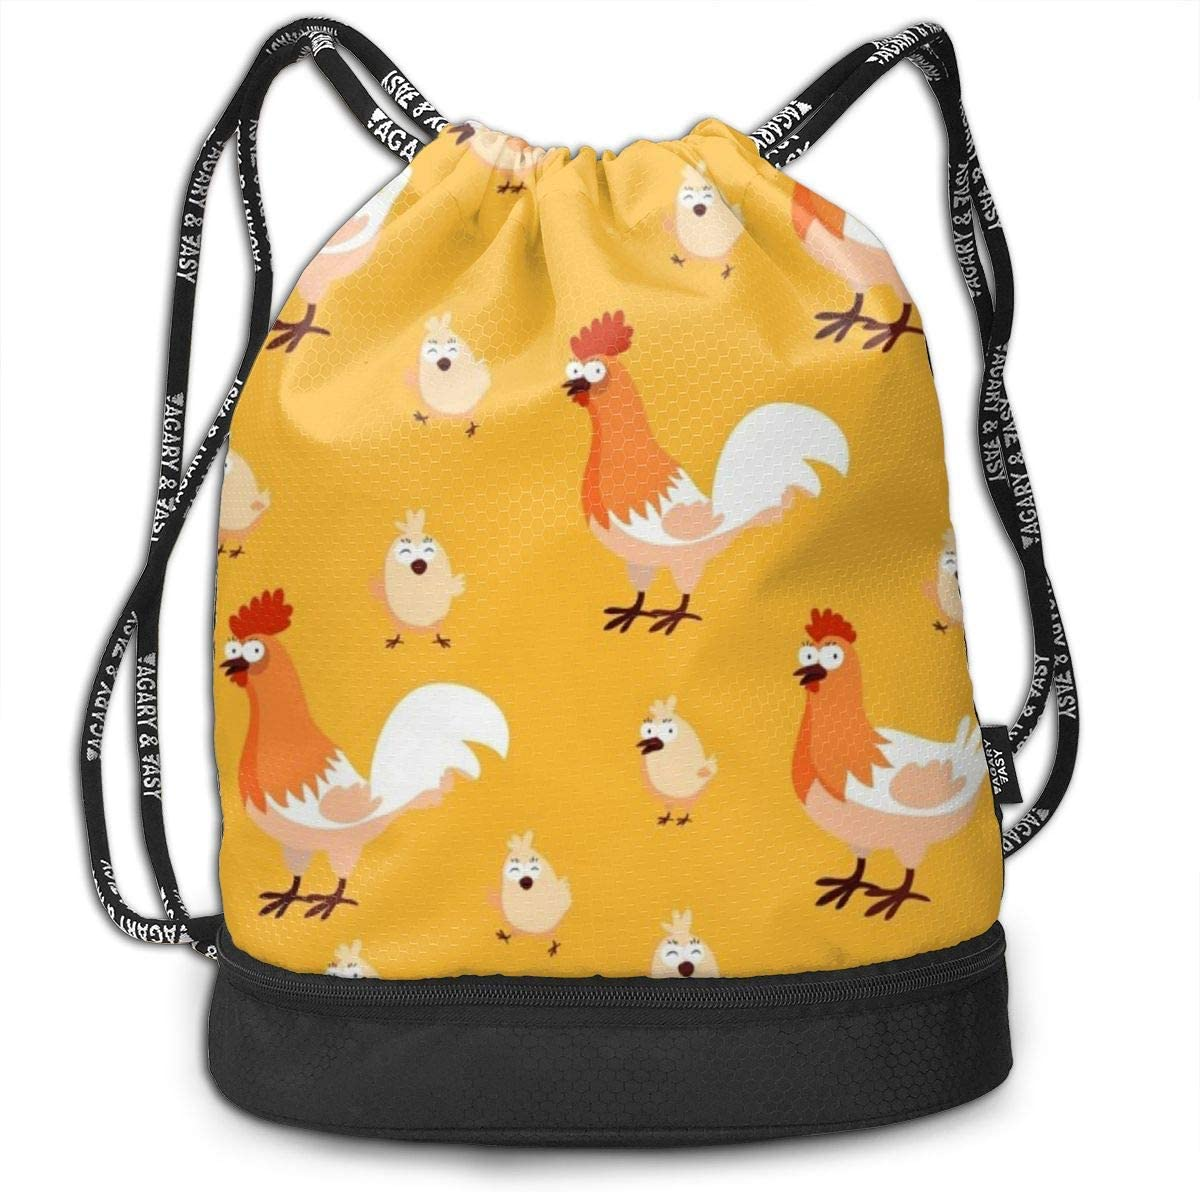 Drawstring Backpack Chicken Bags